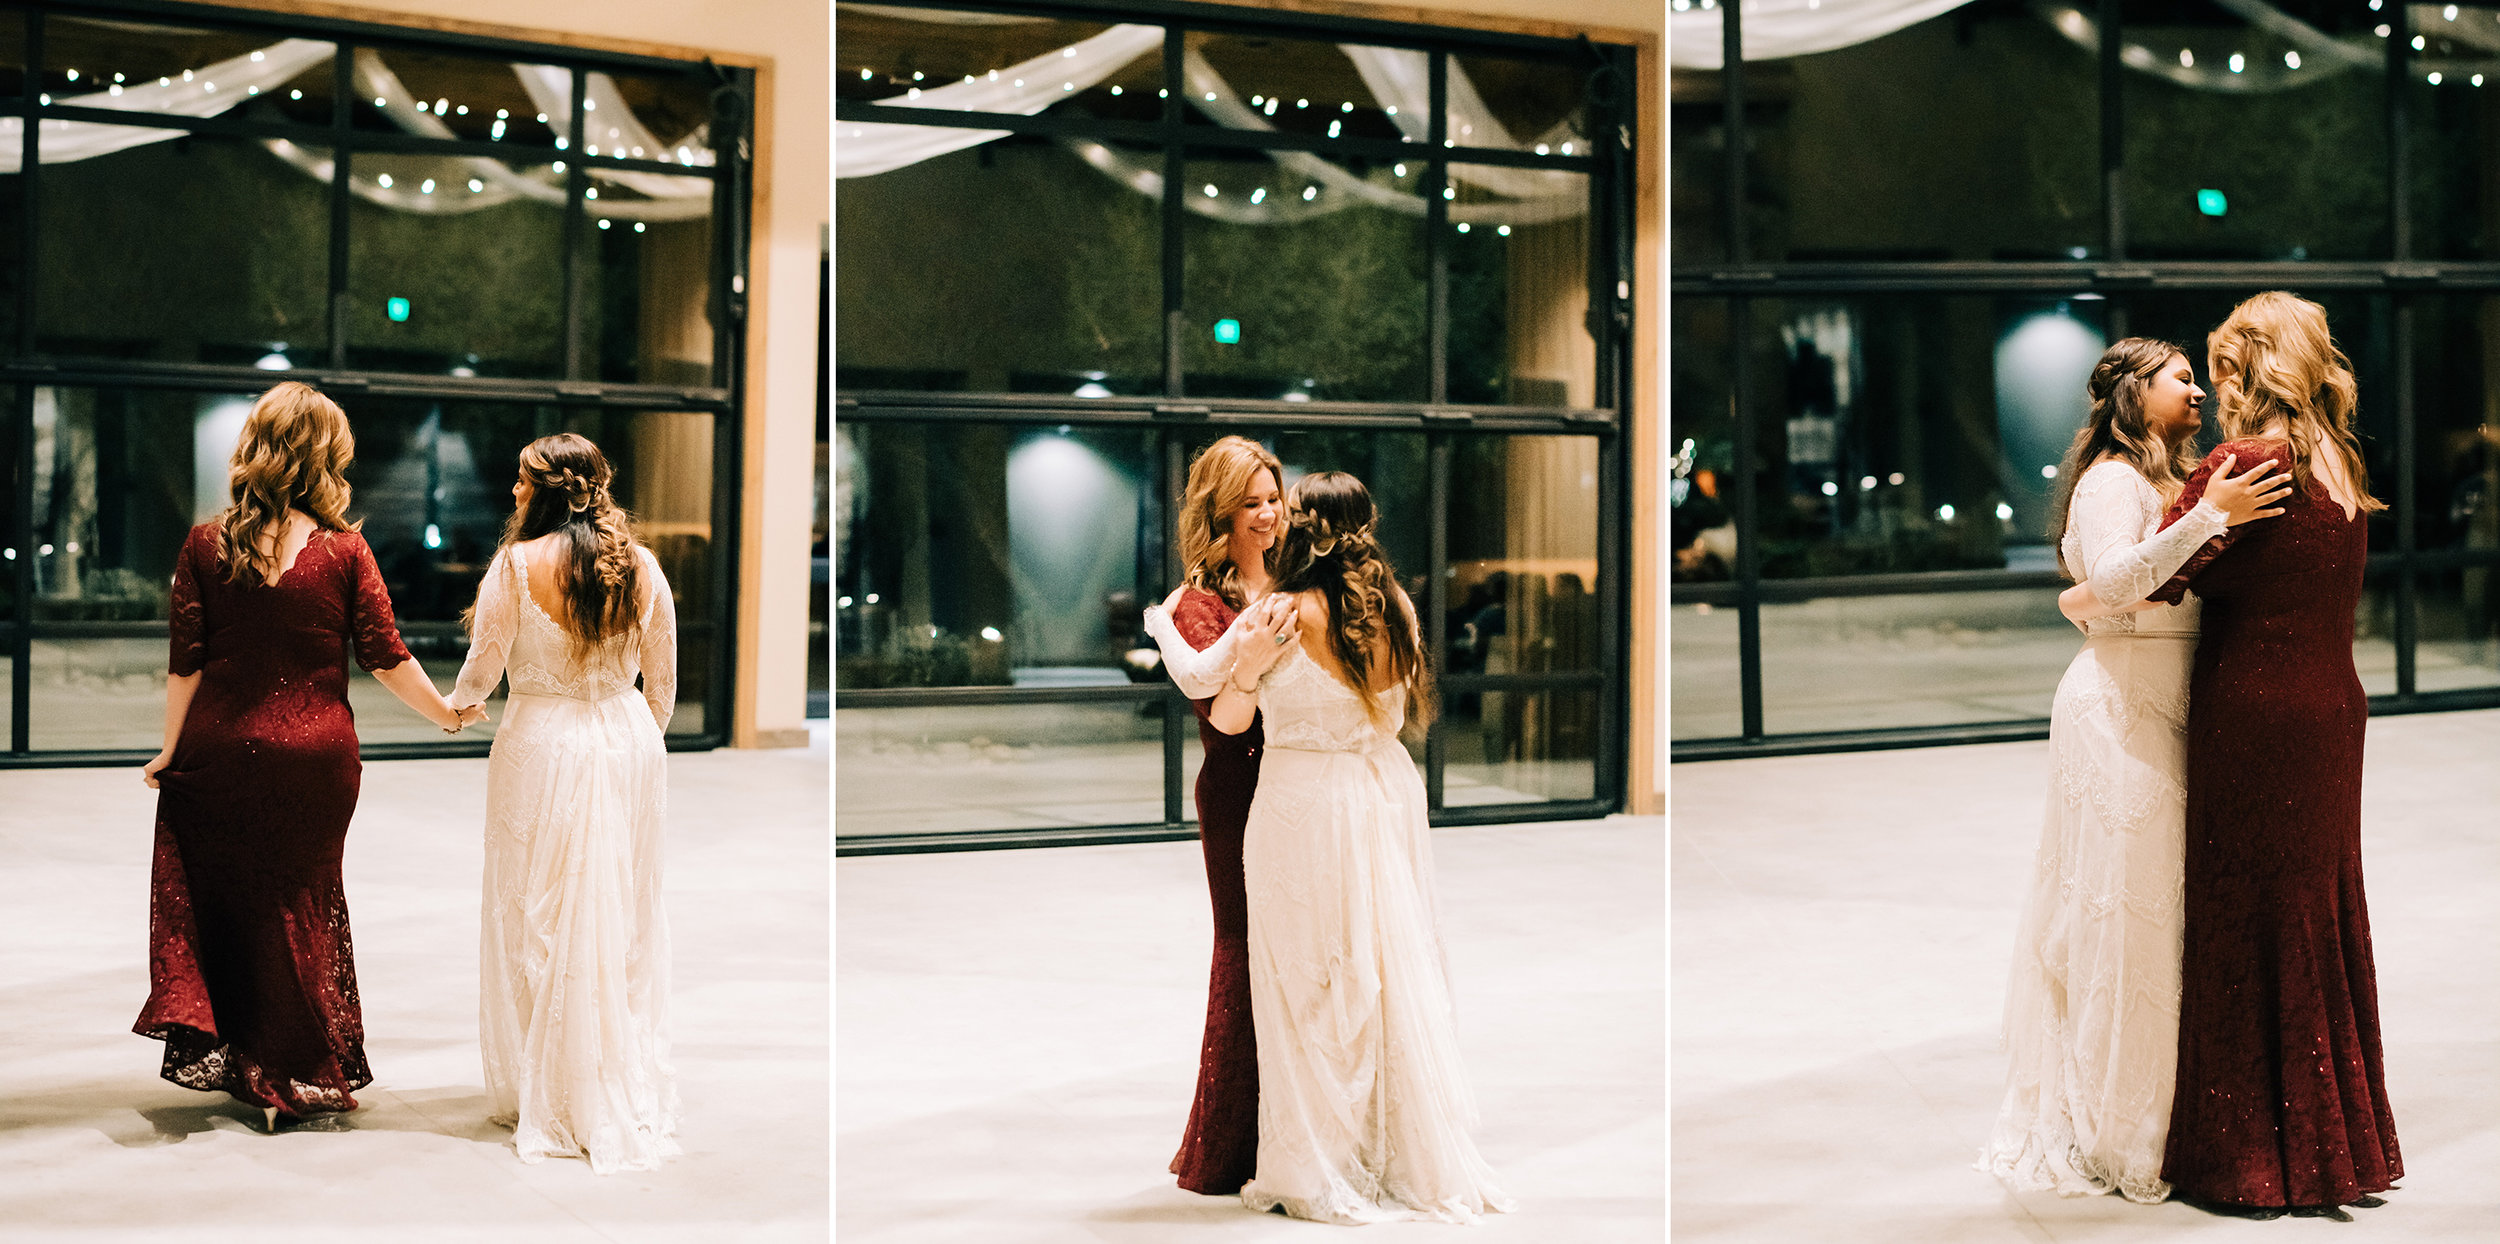 bay area nontraditional wedding photographer southern california boho wedding love light magic san francisco oakland northern california-1192.jpg